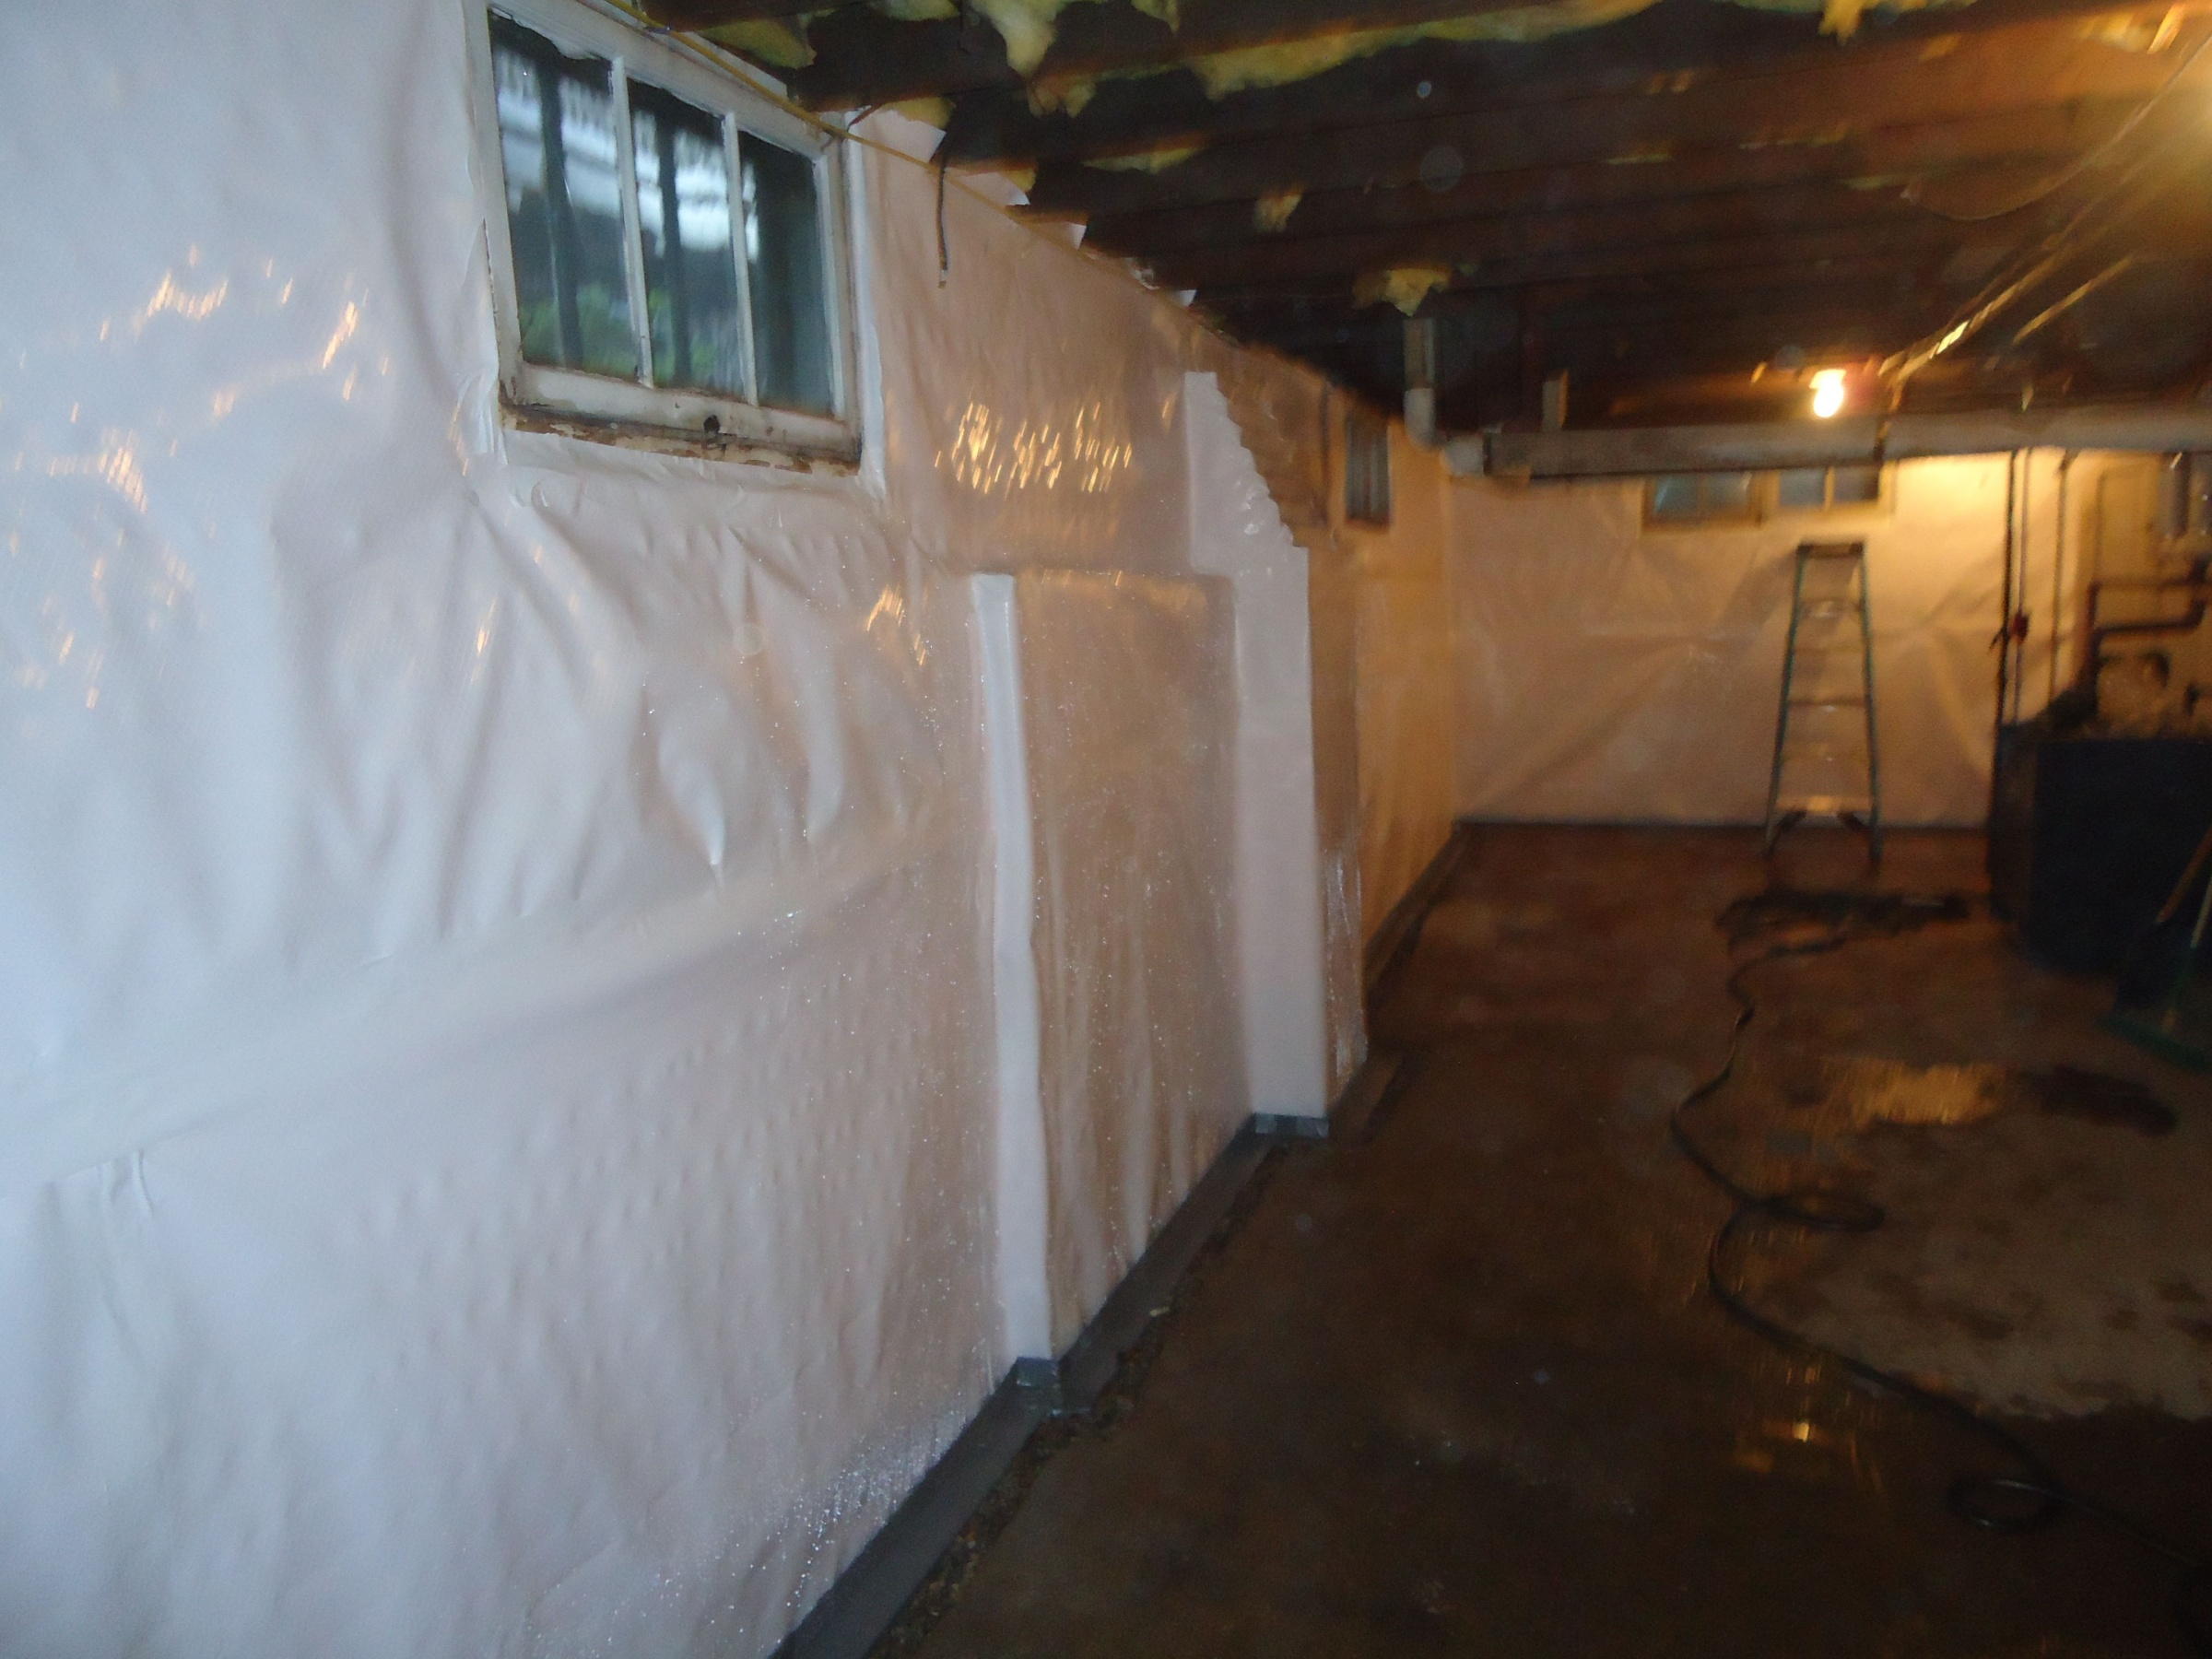 Insulating Basement Walls With French Drain - Insulation